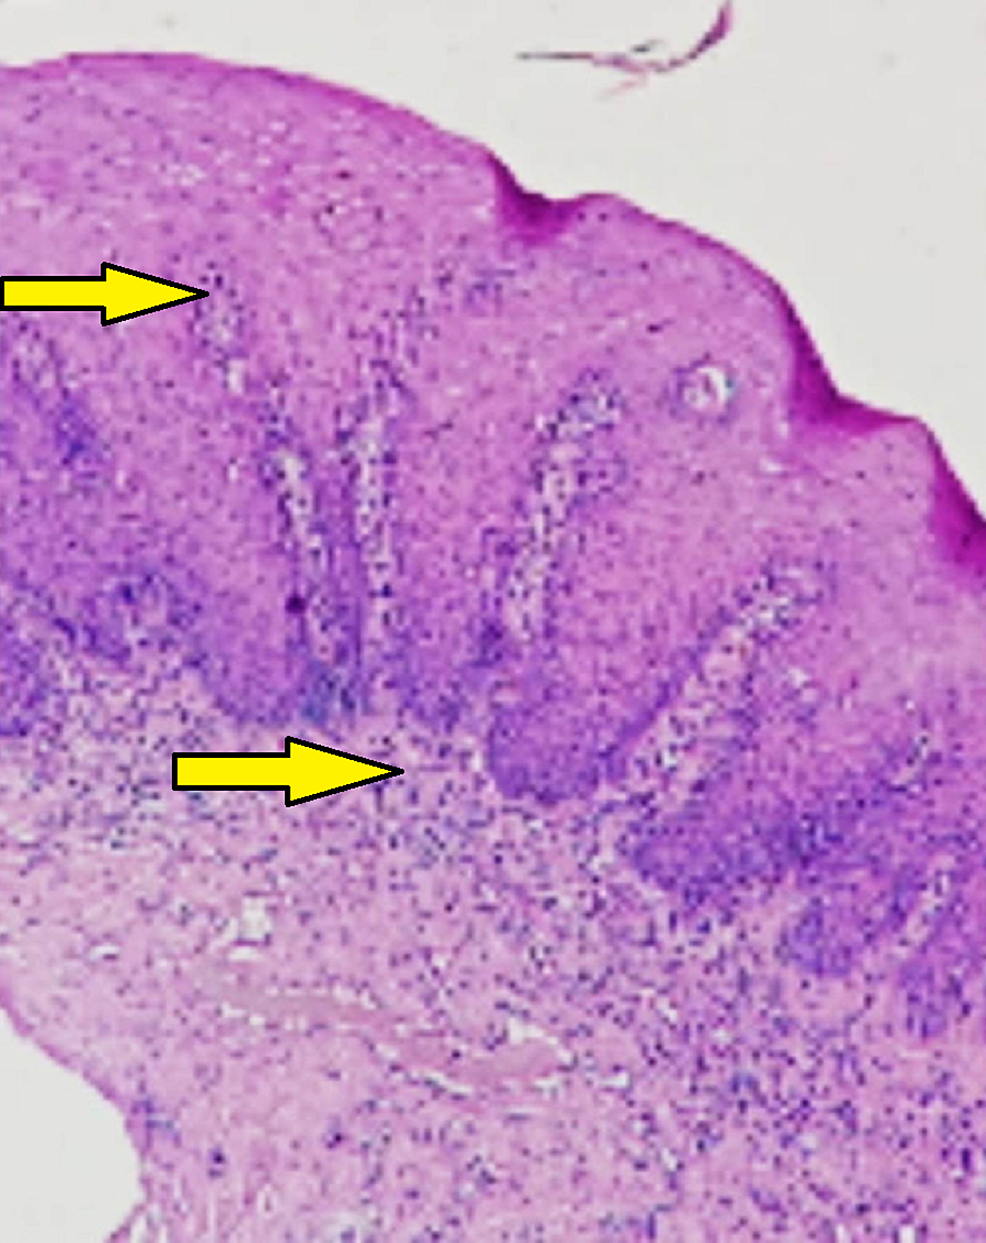 10X-view-showing-papillomatous-hyperplasia-with-juxta-epithelial-inflammatory-cell-infiltration